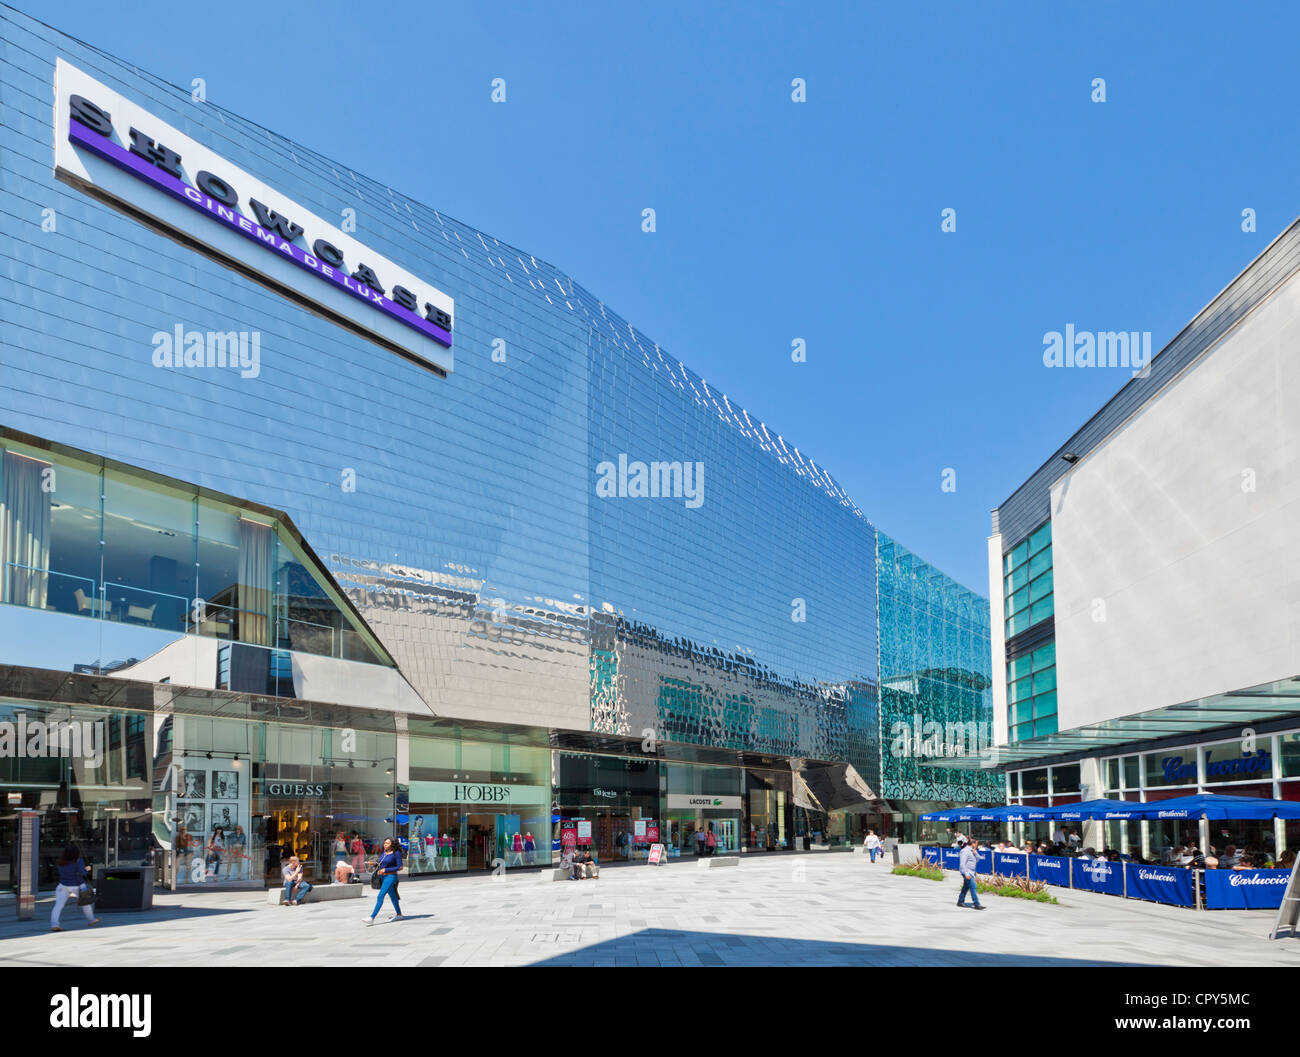 Highcross shopping centre showcase cinema complex  Leicester city centre Leicestershire East Midlands  England UK - Stock Image